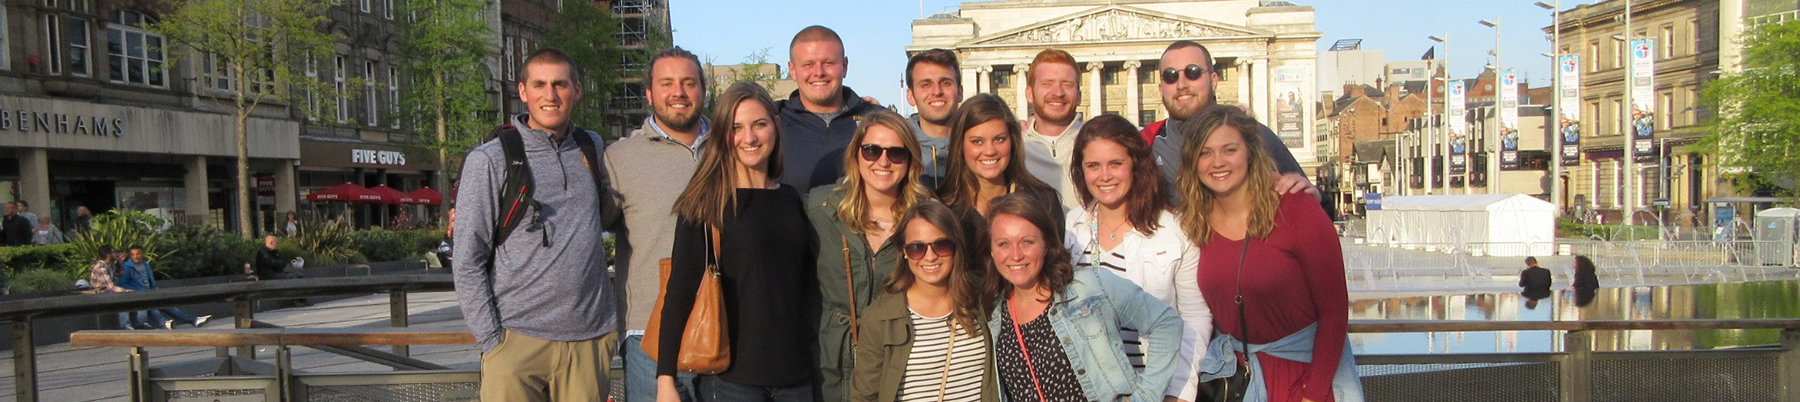 A group of Marian University students in Europe.